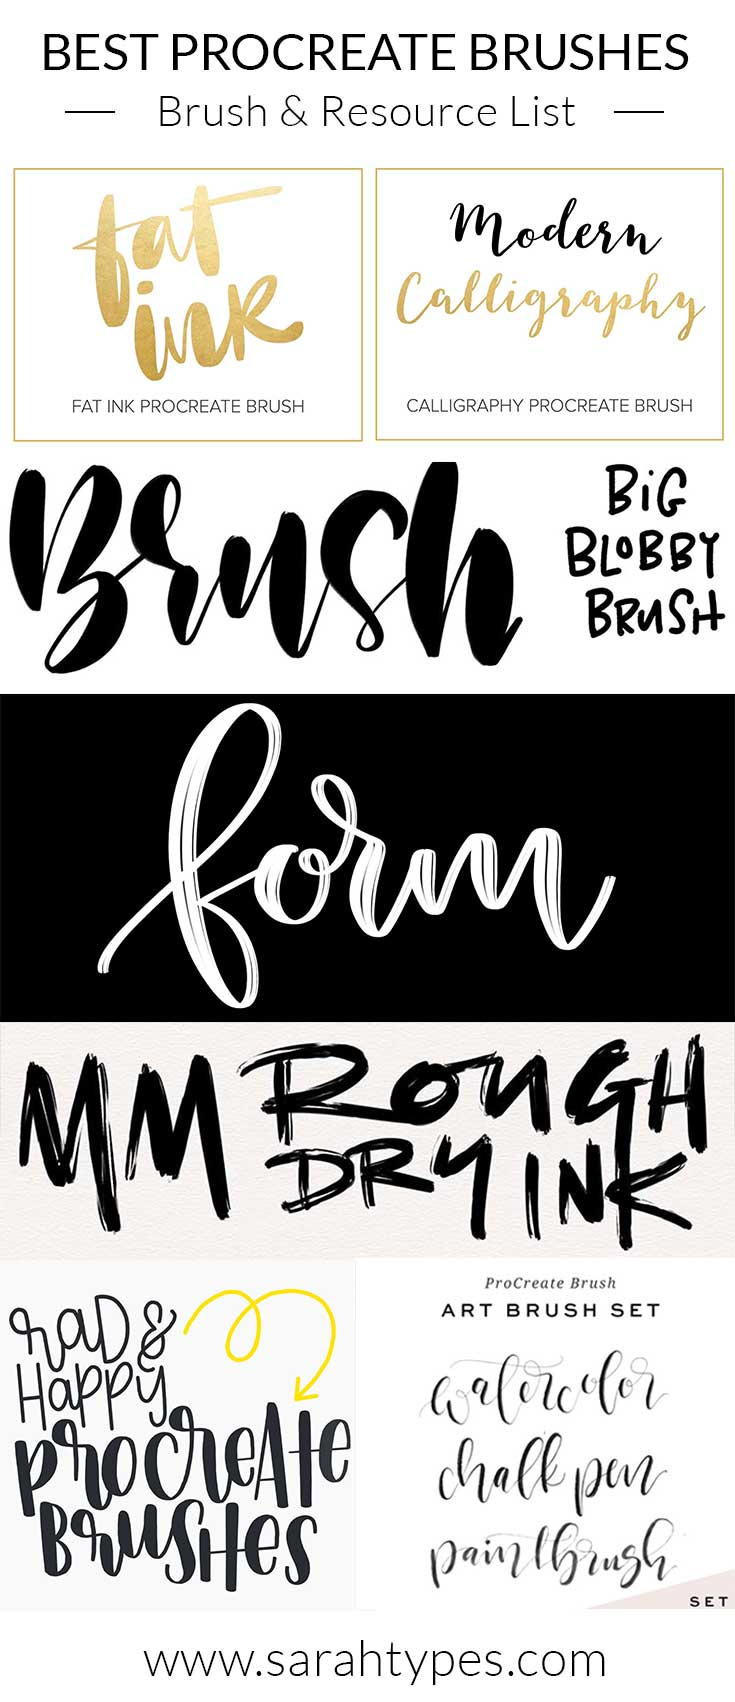 https://every-tuesday.com/freebie-hand-lettering-guide-sheets/